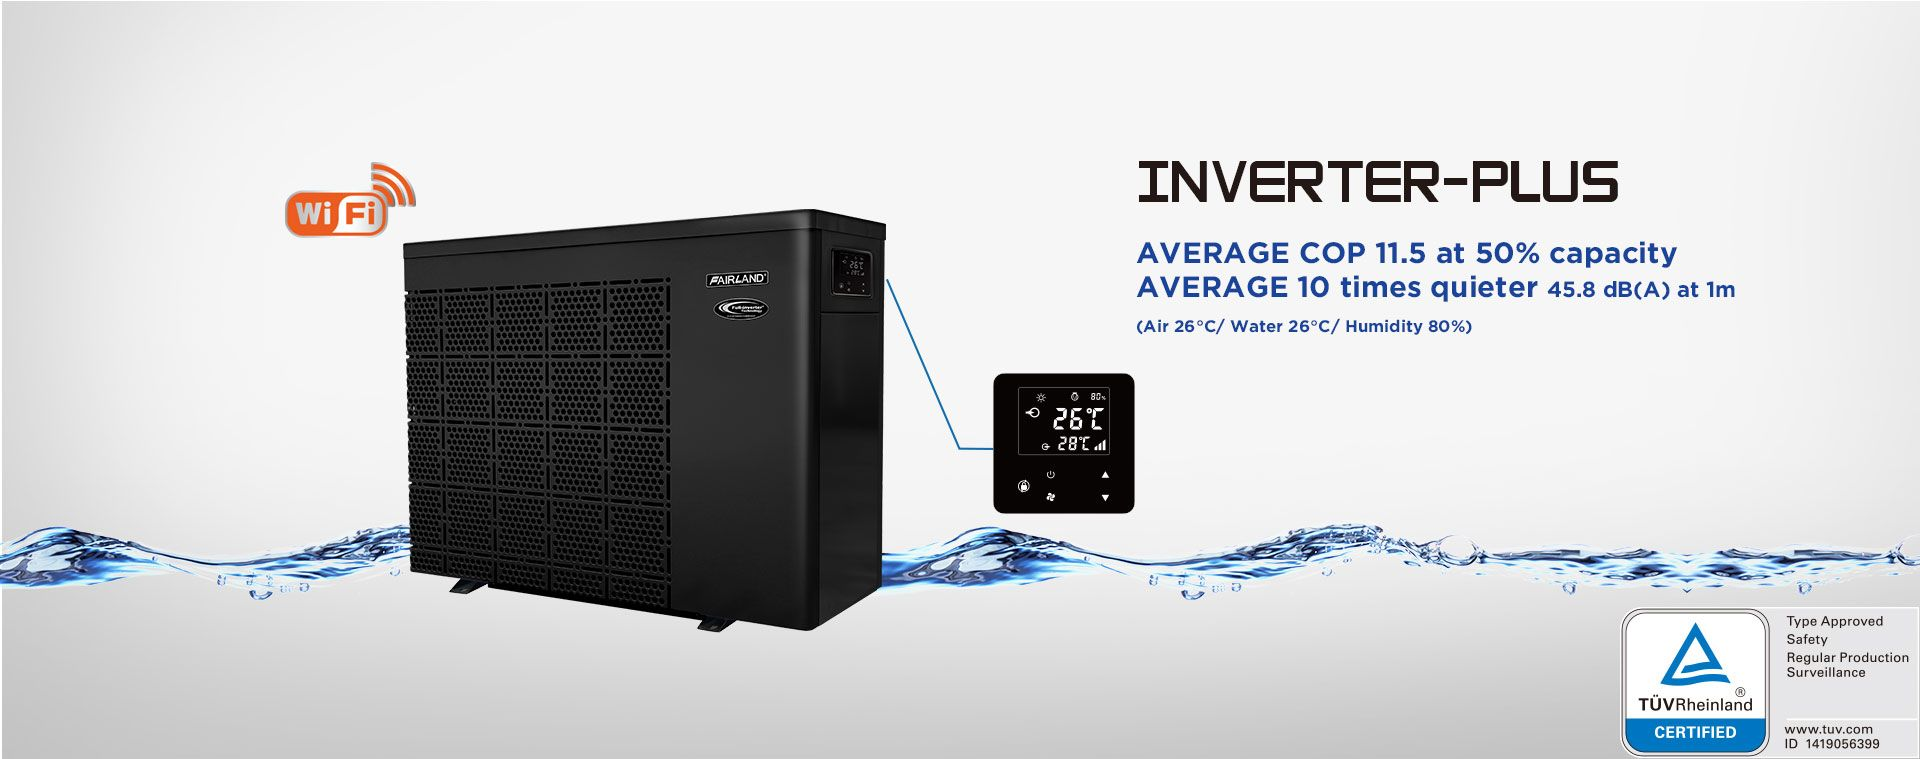 Pool Wärmepumpe Inverter Inverter Plus Fairland Full Inverter Pool Heat Pump The Best